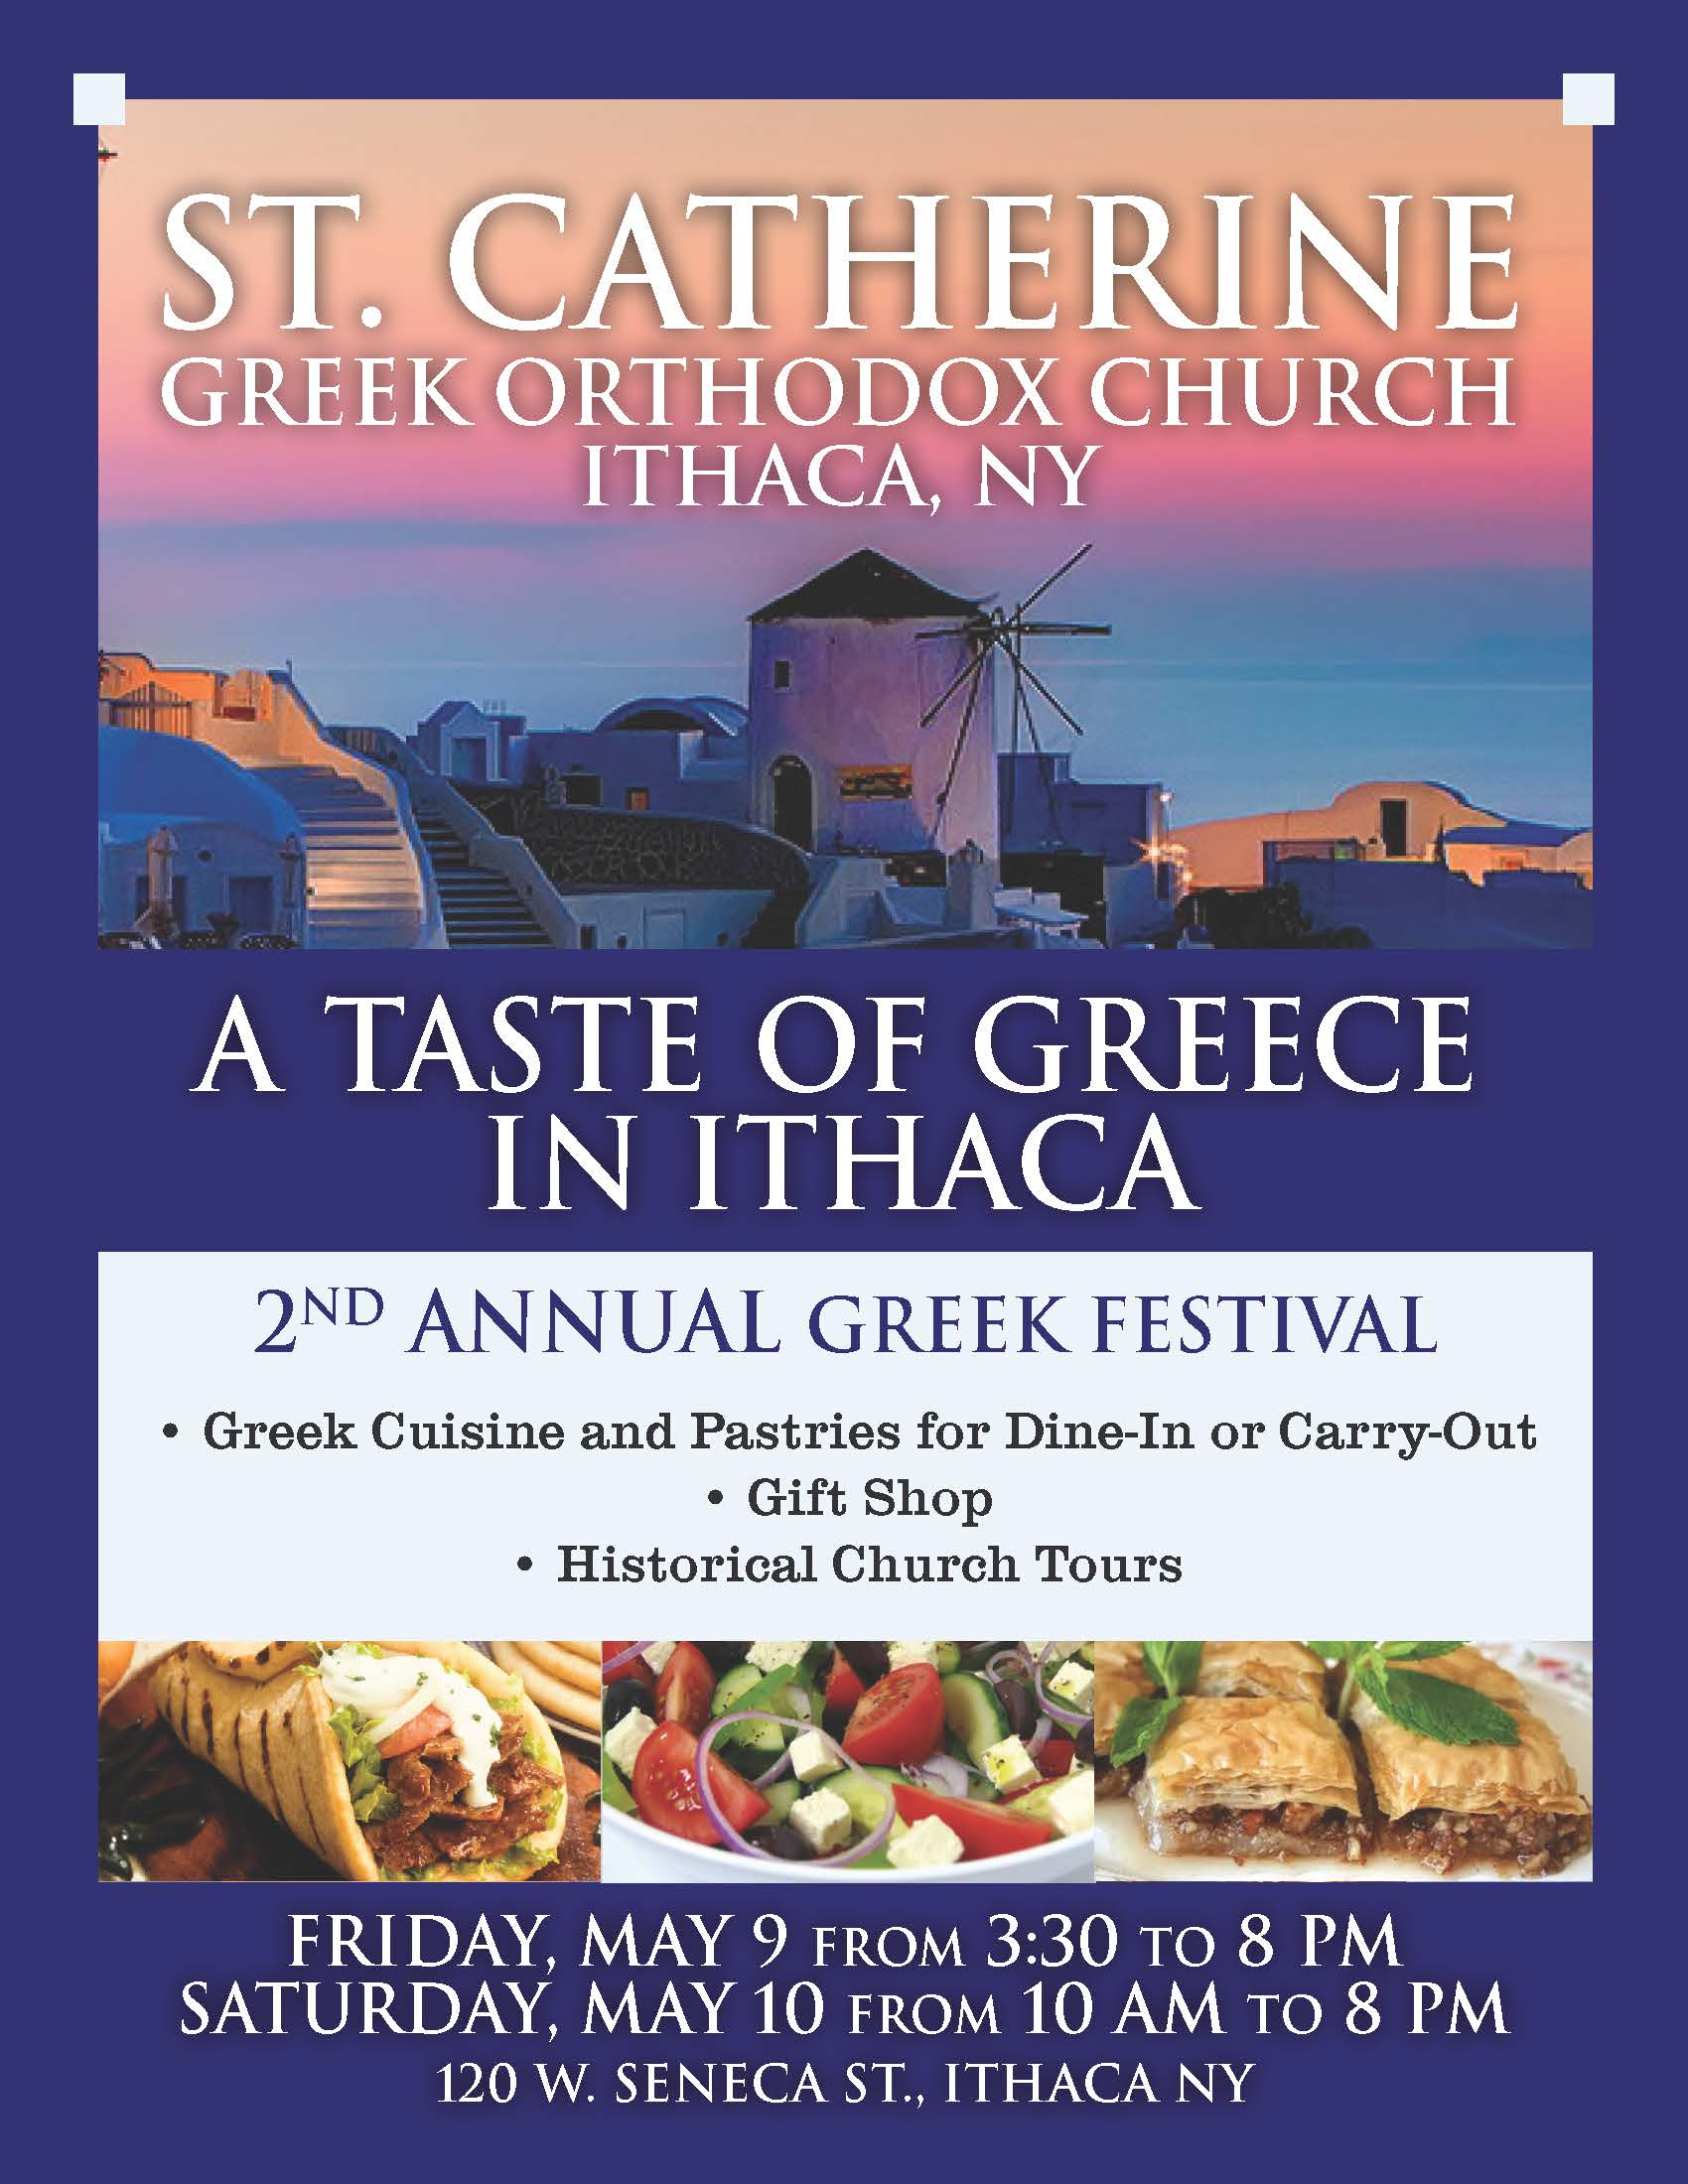 Taste of Greece flyer 2014